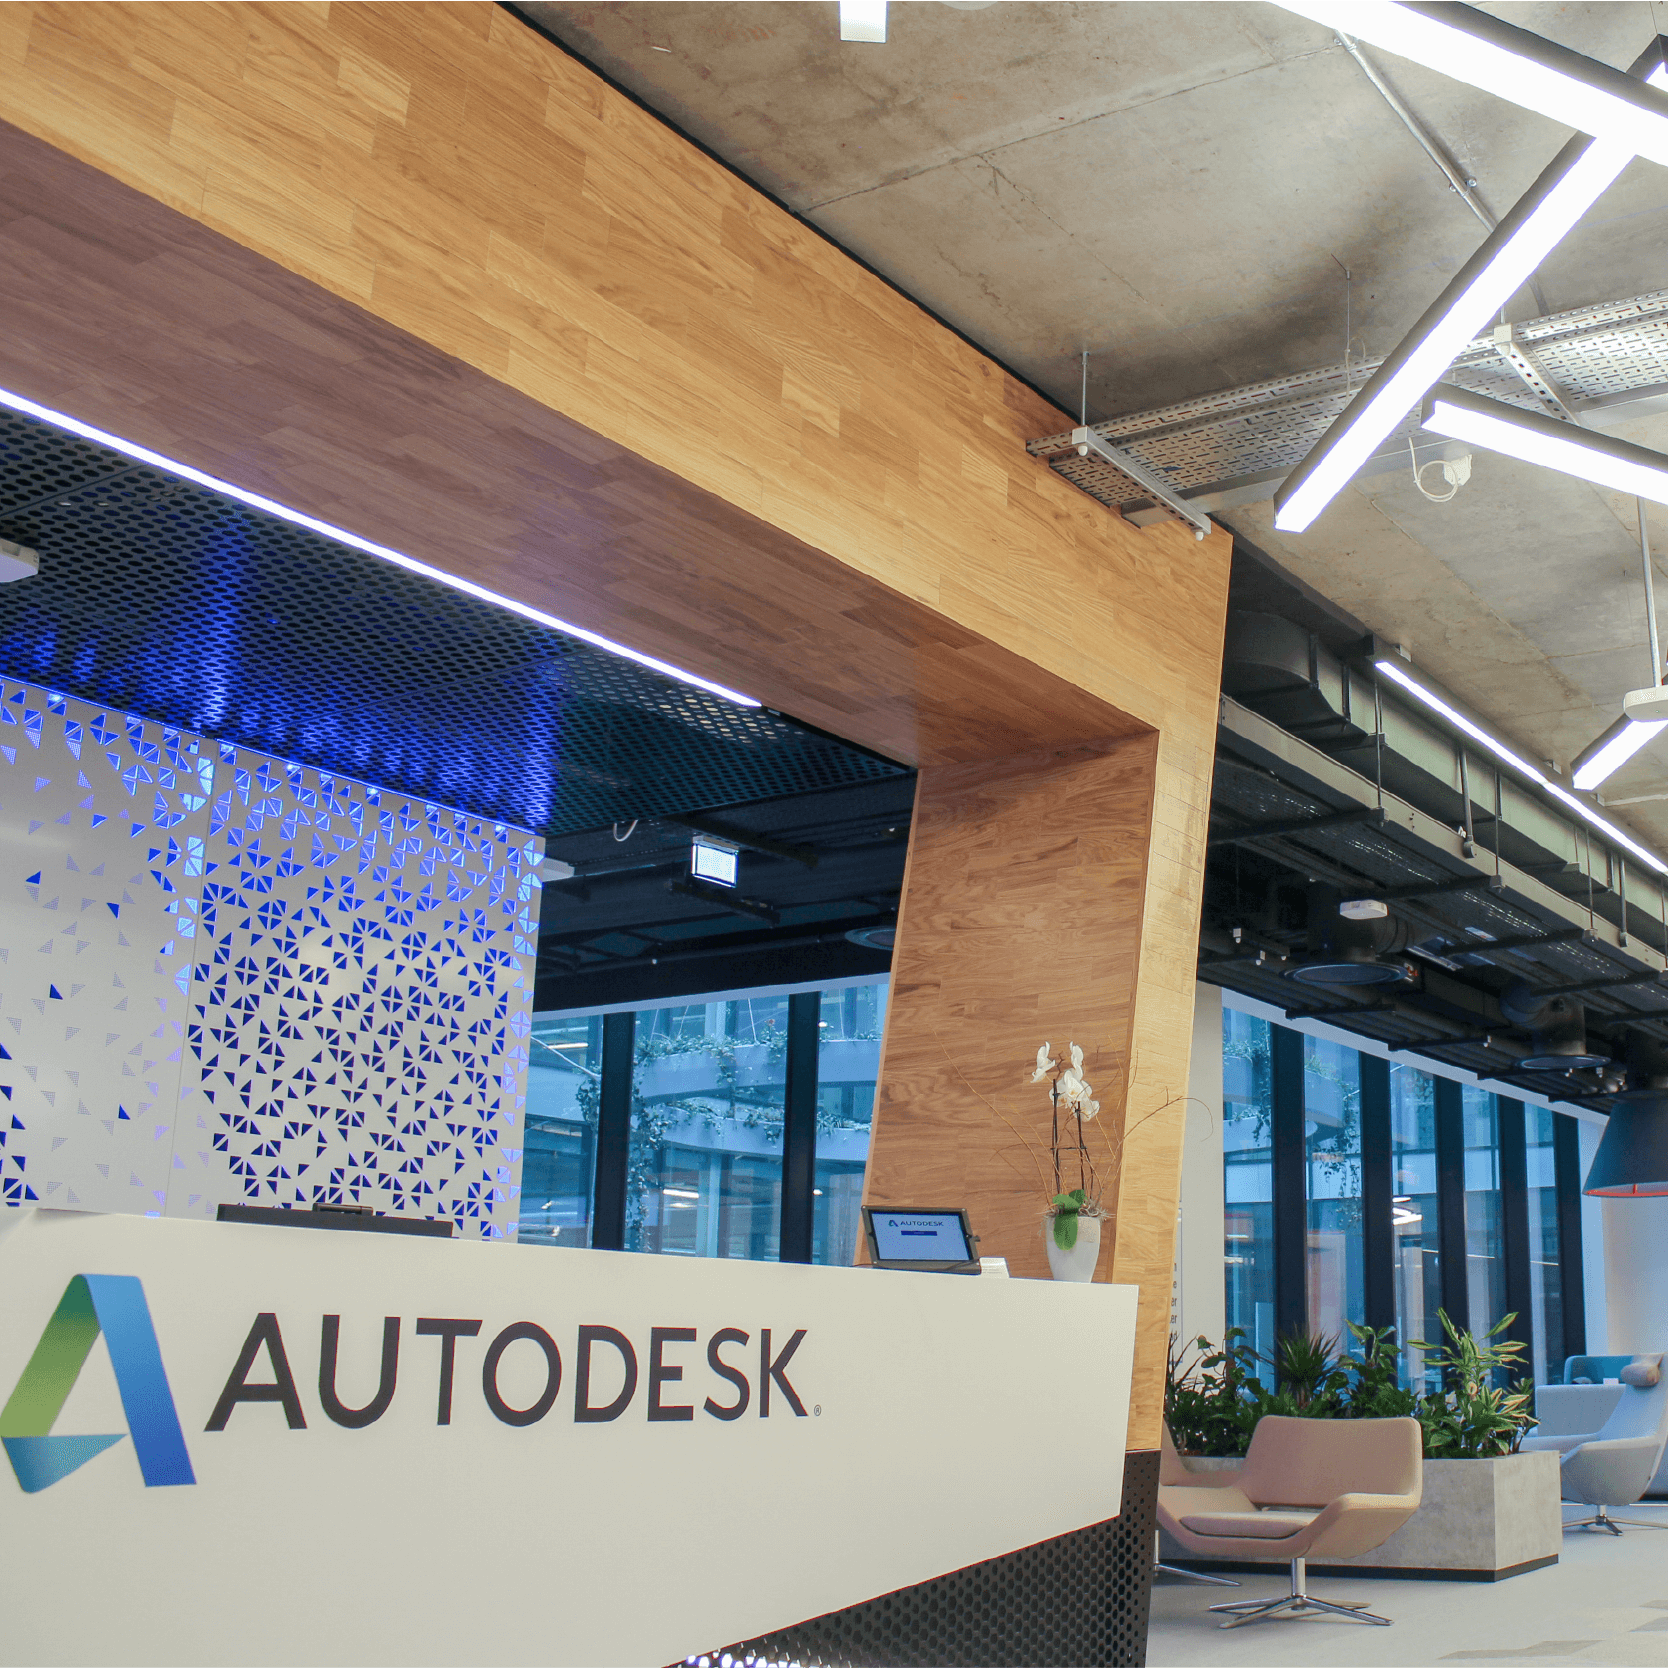 Autodesk Featured Image-01